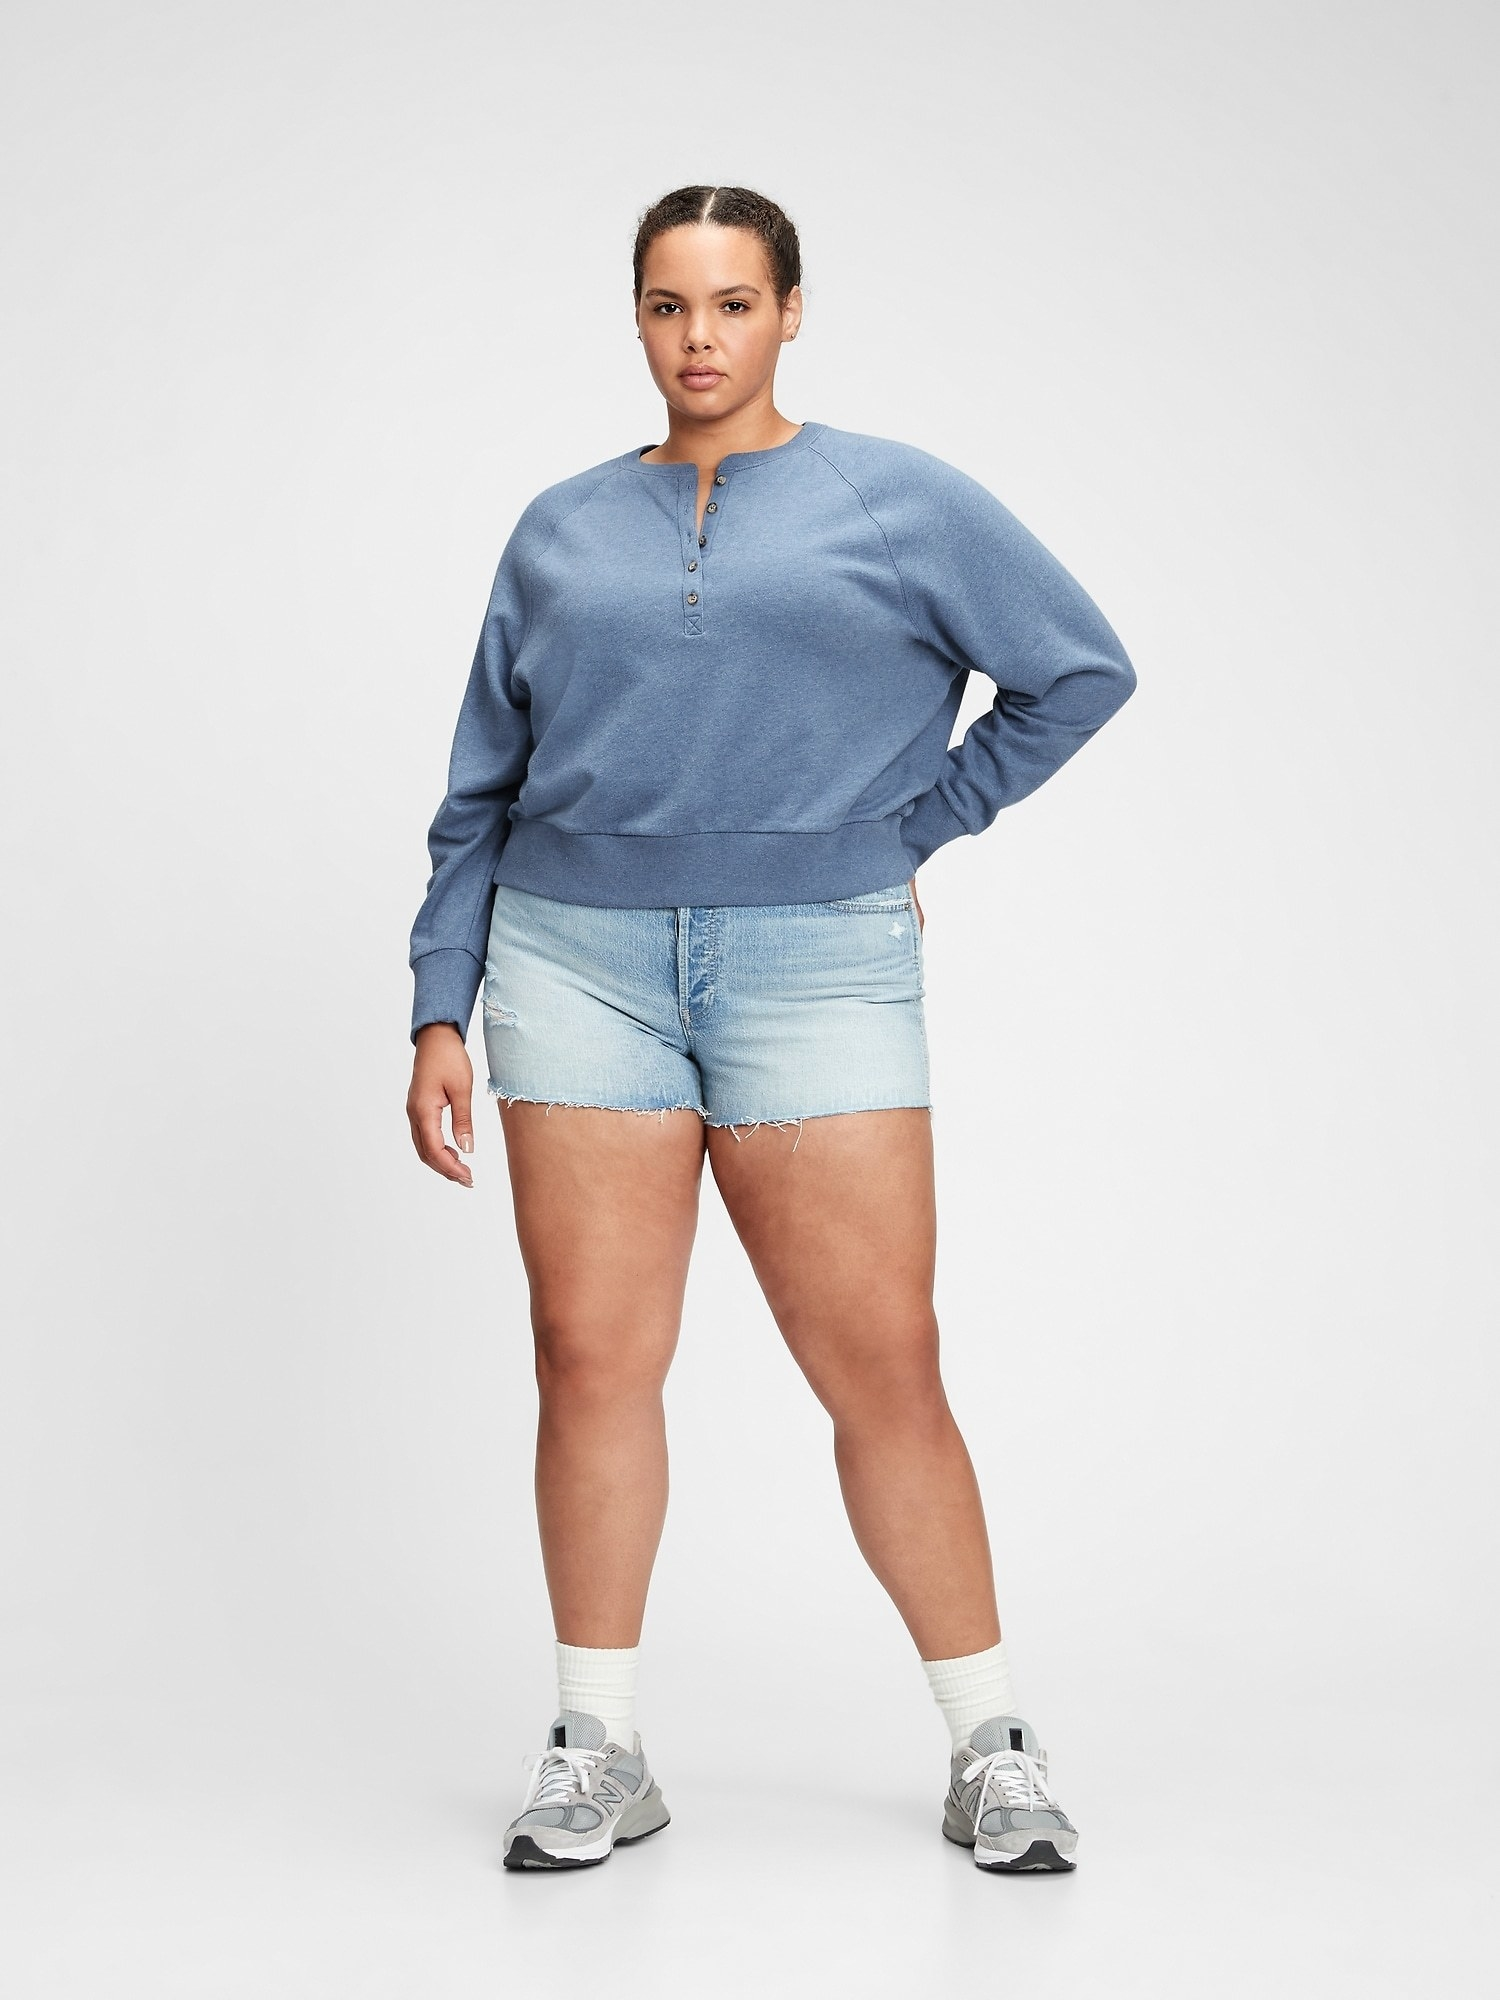 a model in the sweatshirt with buttons down the front in blue